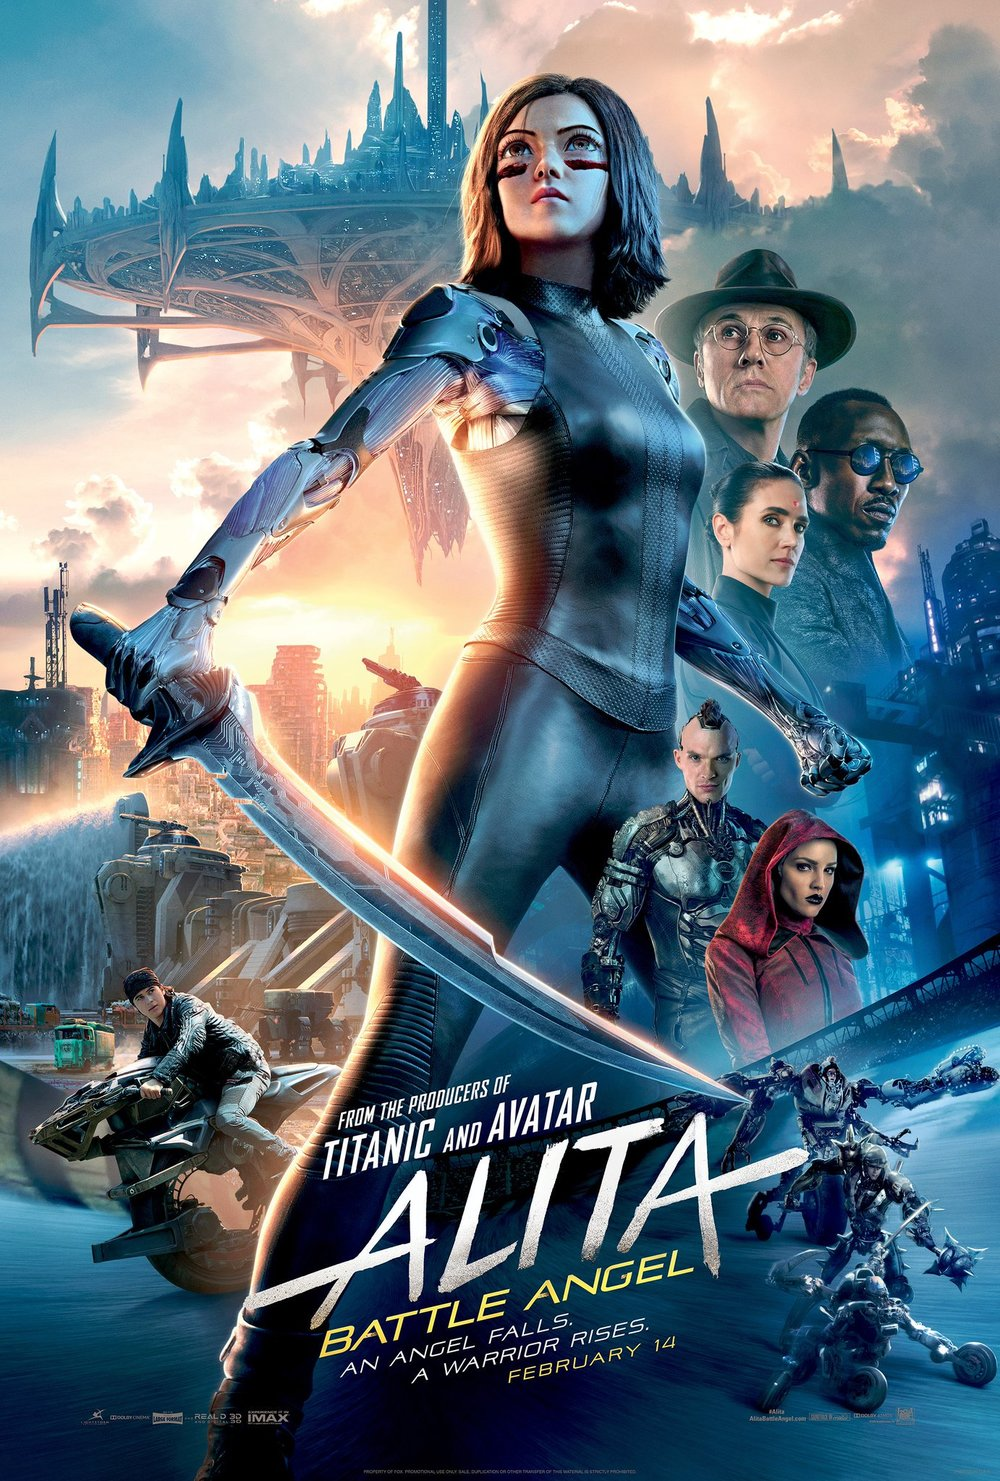 alita-battle-angel1.jpg